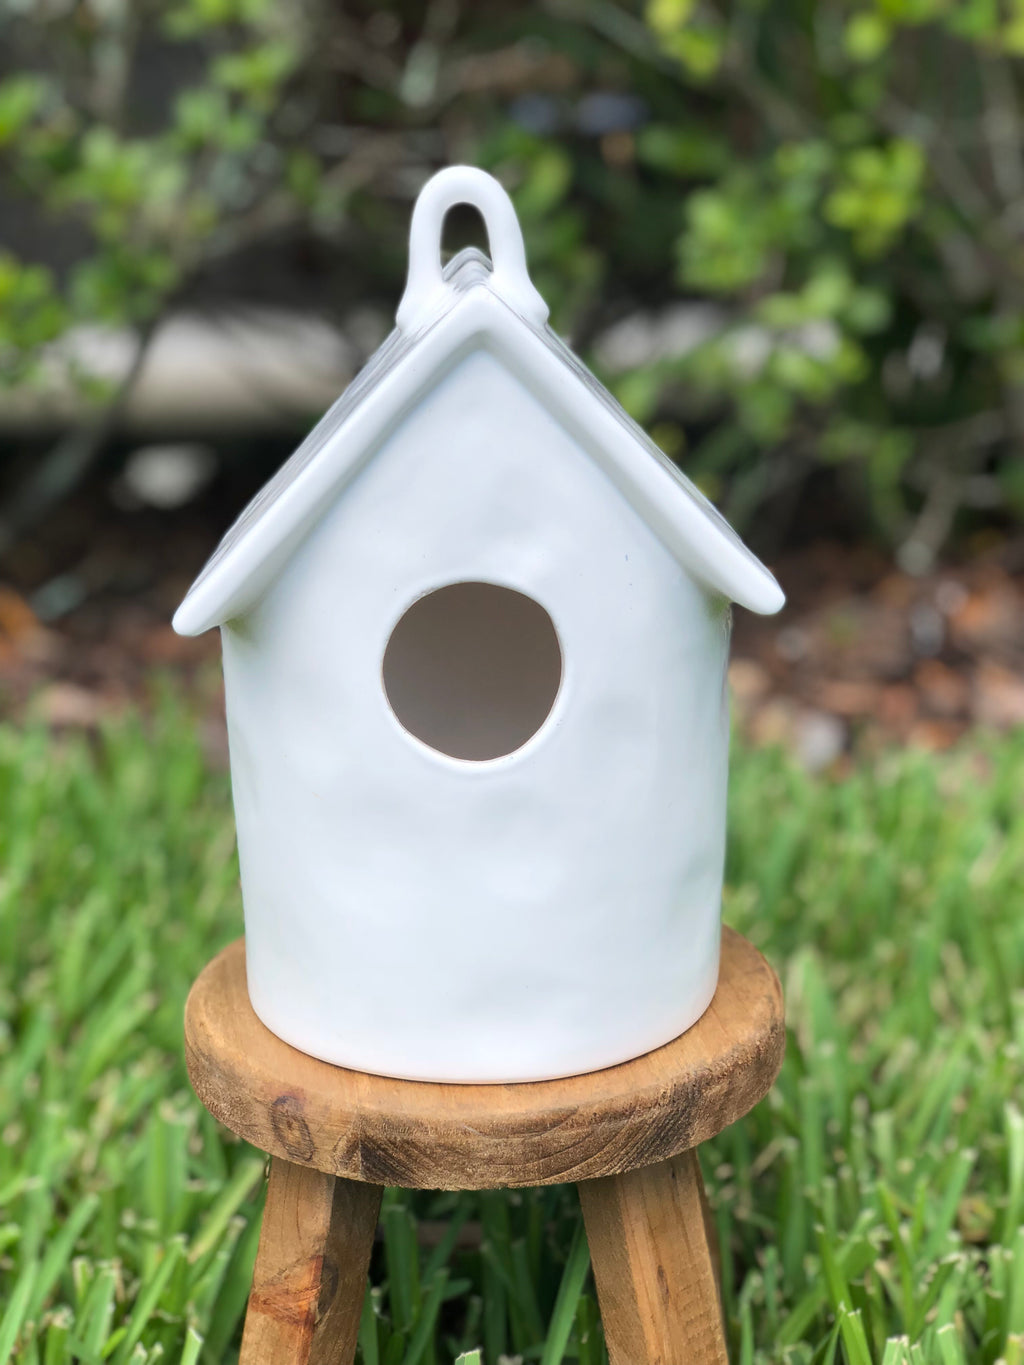 Ceramic Blank Round Roof Top Birdhouse By Kathy Diep